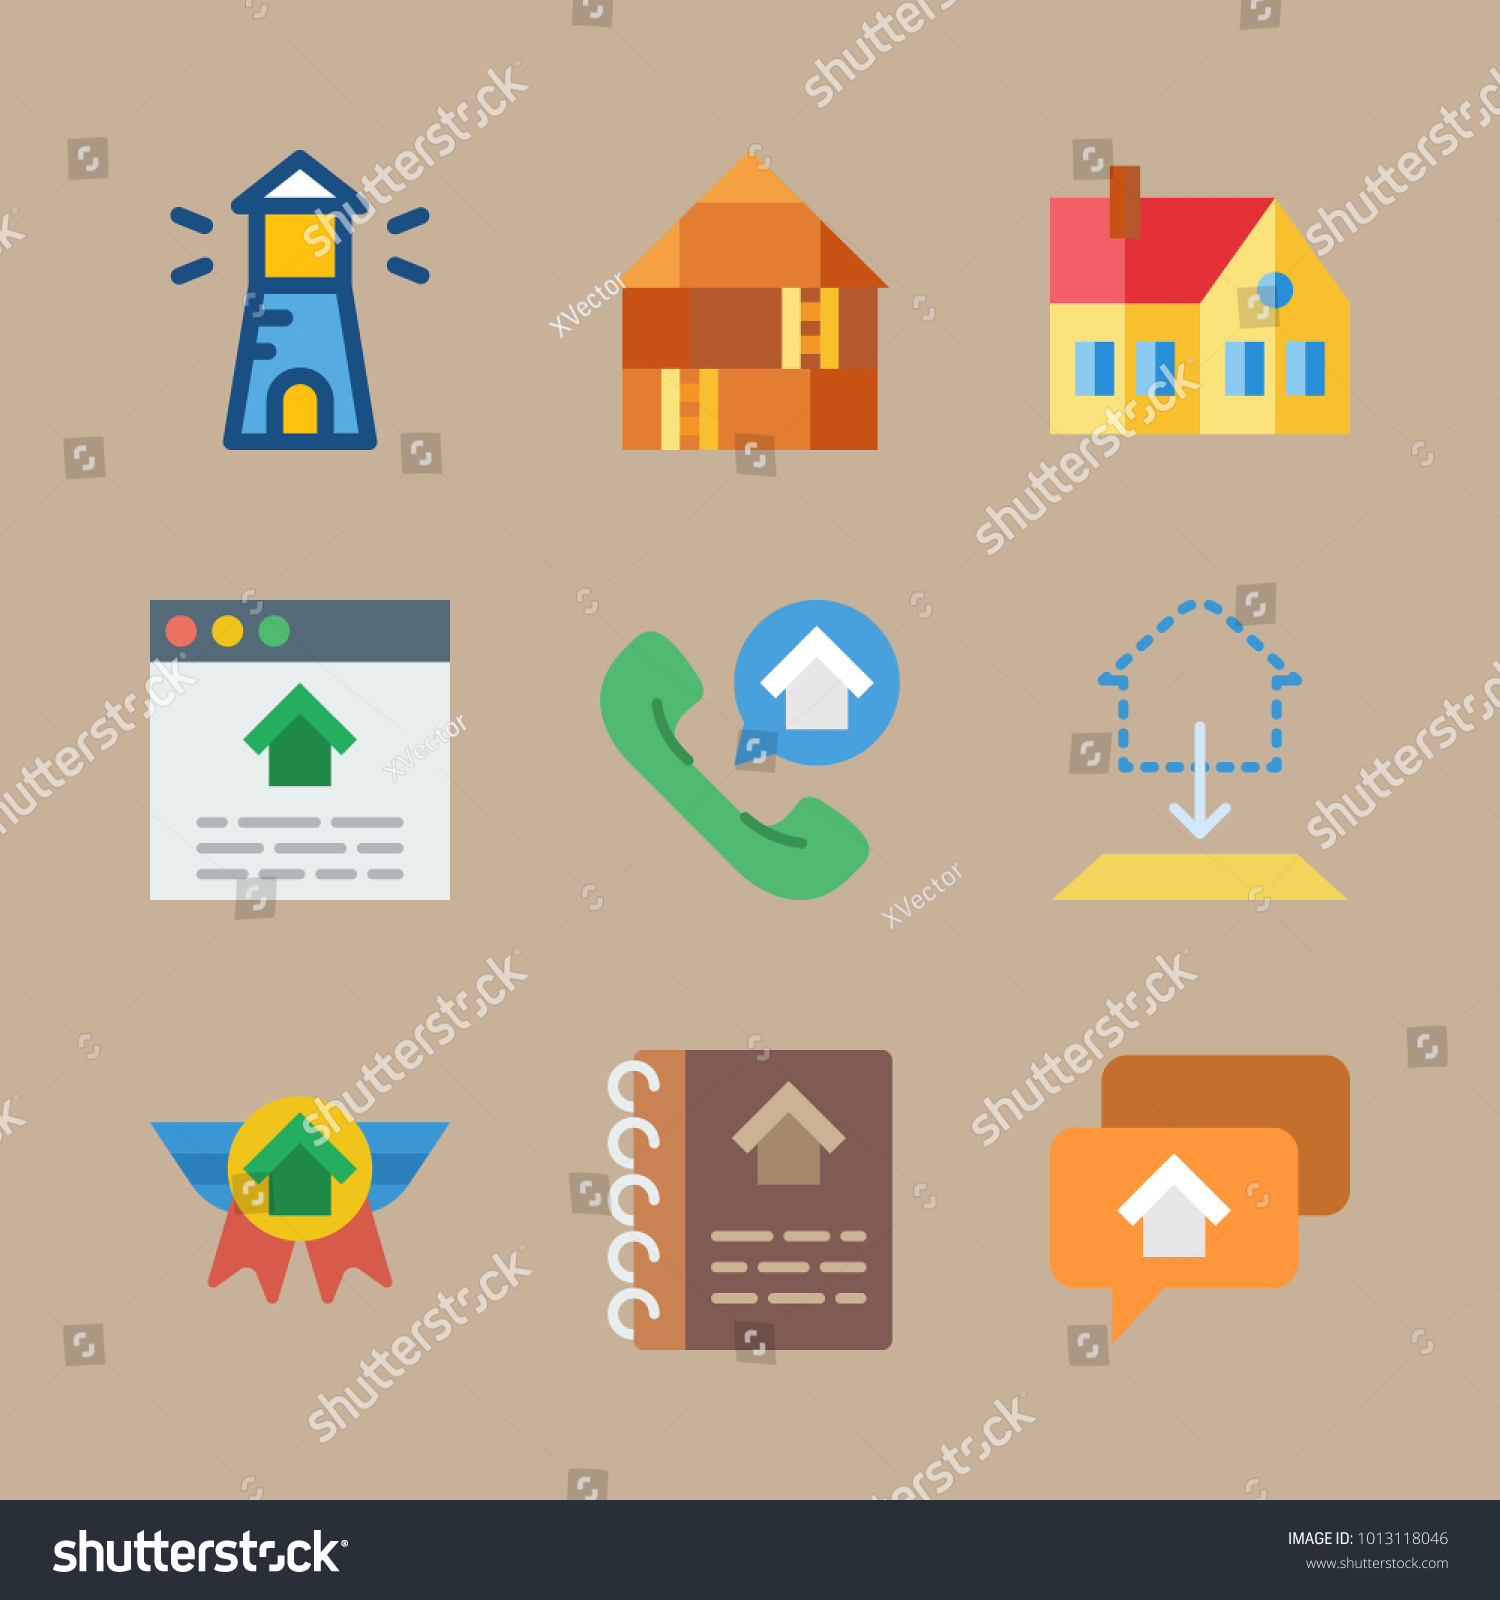 Icon real estate blueprint house lighthouse stock vector 2018 icon real estate with blueprint house lighthouse home and house catalogue malvernweather Images